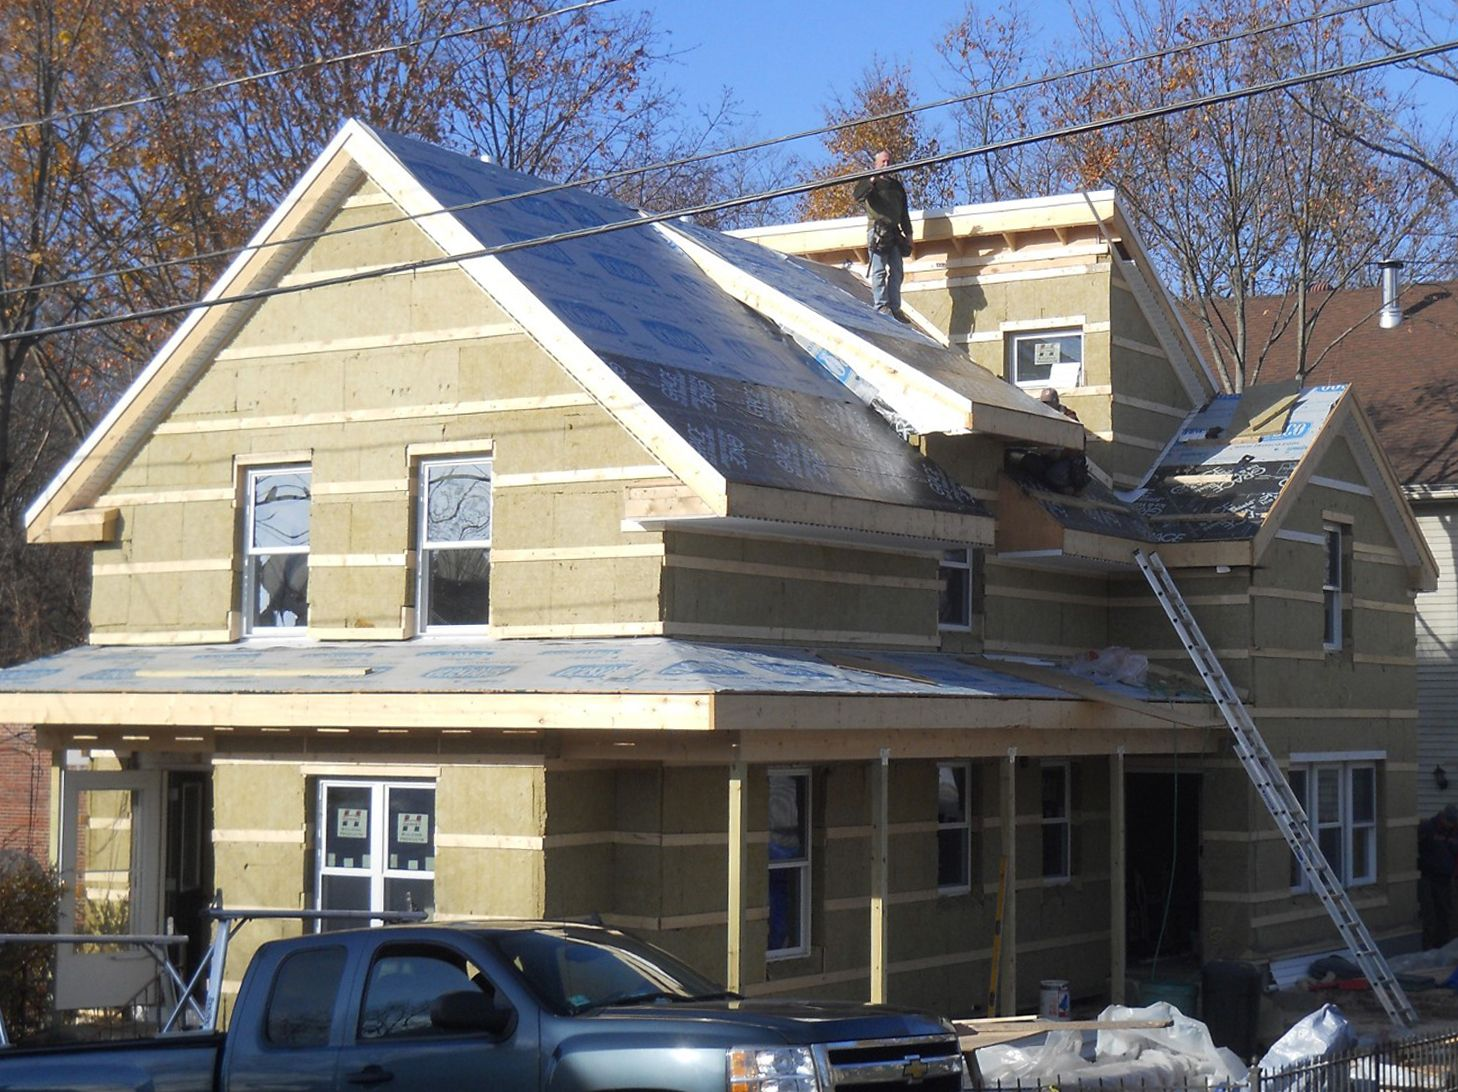 Wrapping An Older House With Rock Wool Insulation Exterior Insulation Rock Wool Insulation House Exterior